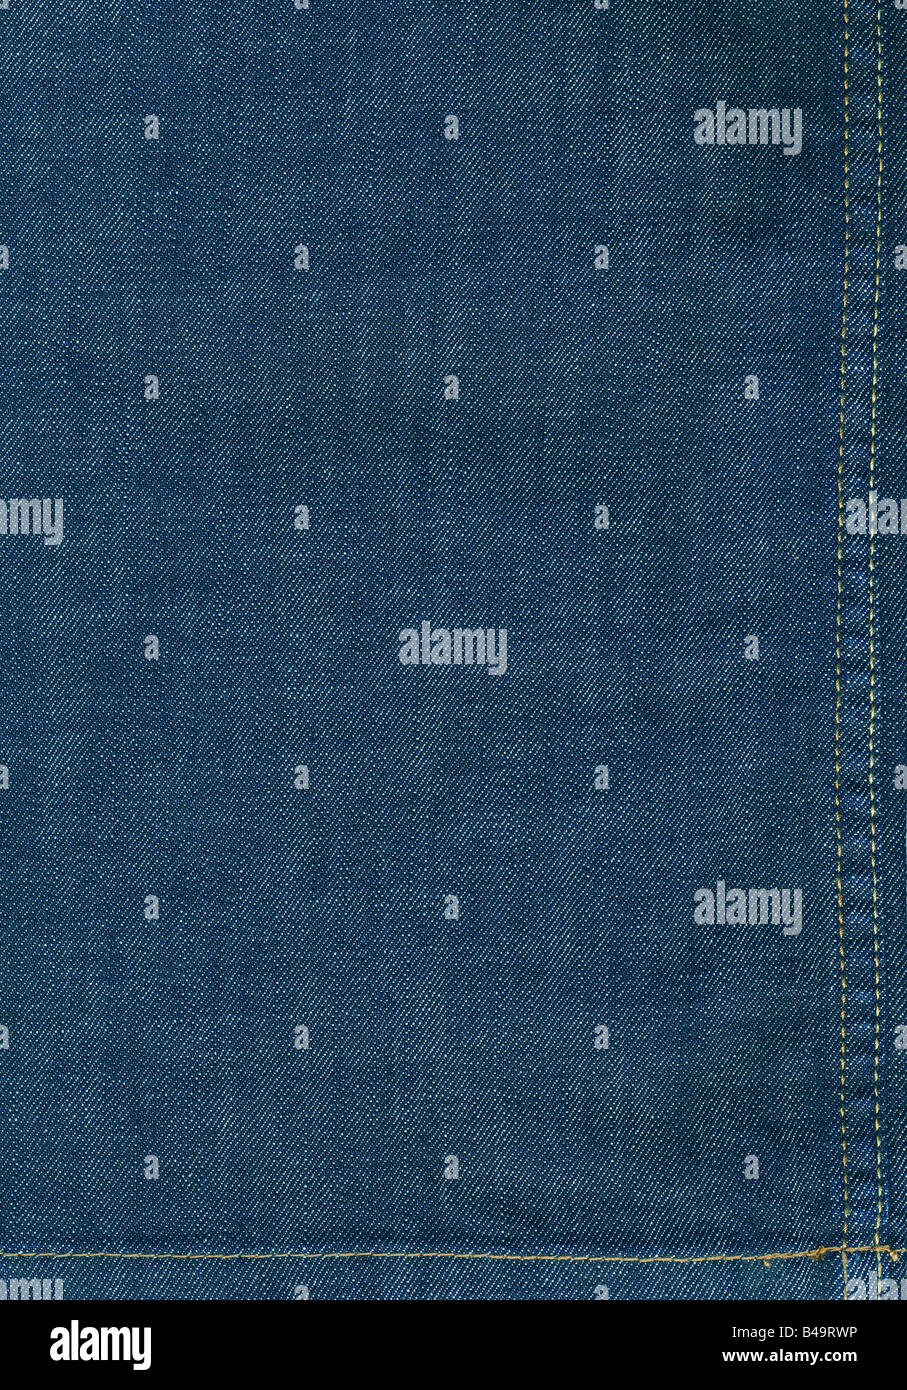 Flat background image of dark blue denim fabric with seams large XXL high resolution image - Stock Image